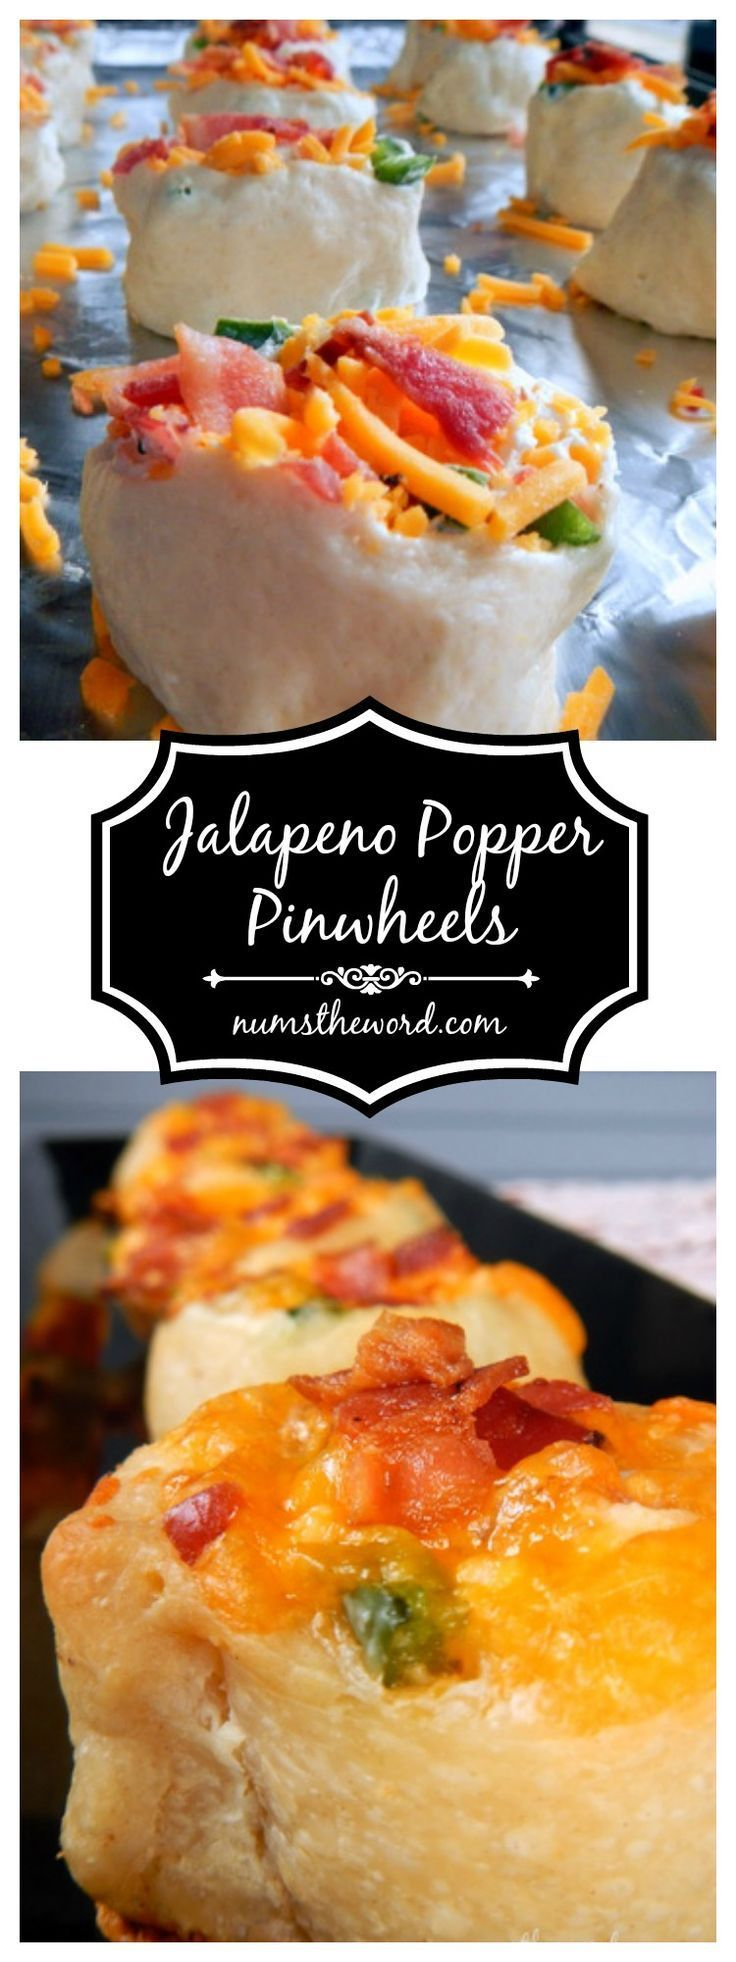 Jalapeno Popper Pinwheels - Looking for a quick appetizer?  This one takes 20 minutes or less and will be a hit with your guests!  Jalapeno Popper Pinwheels are one of our favorite go to appetizer and snack recipes!